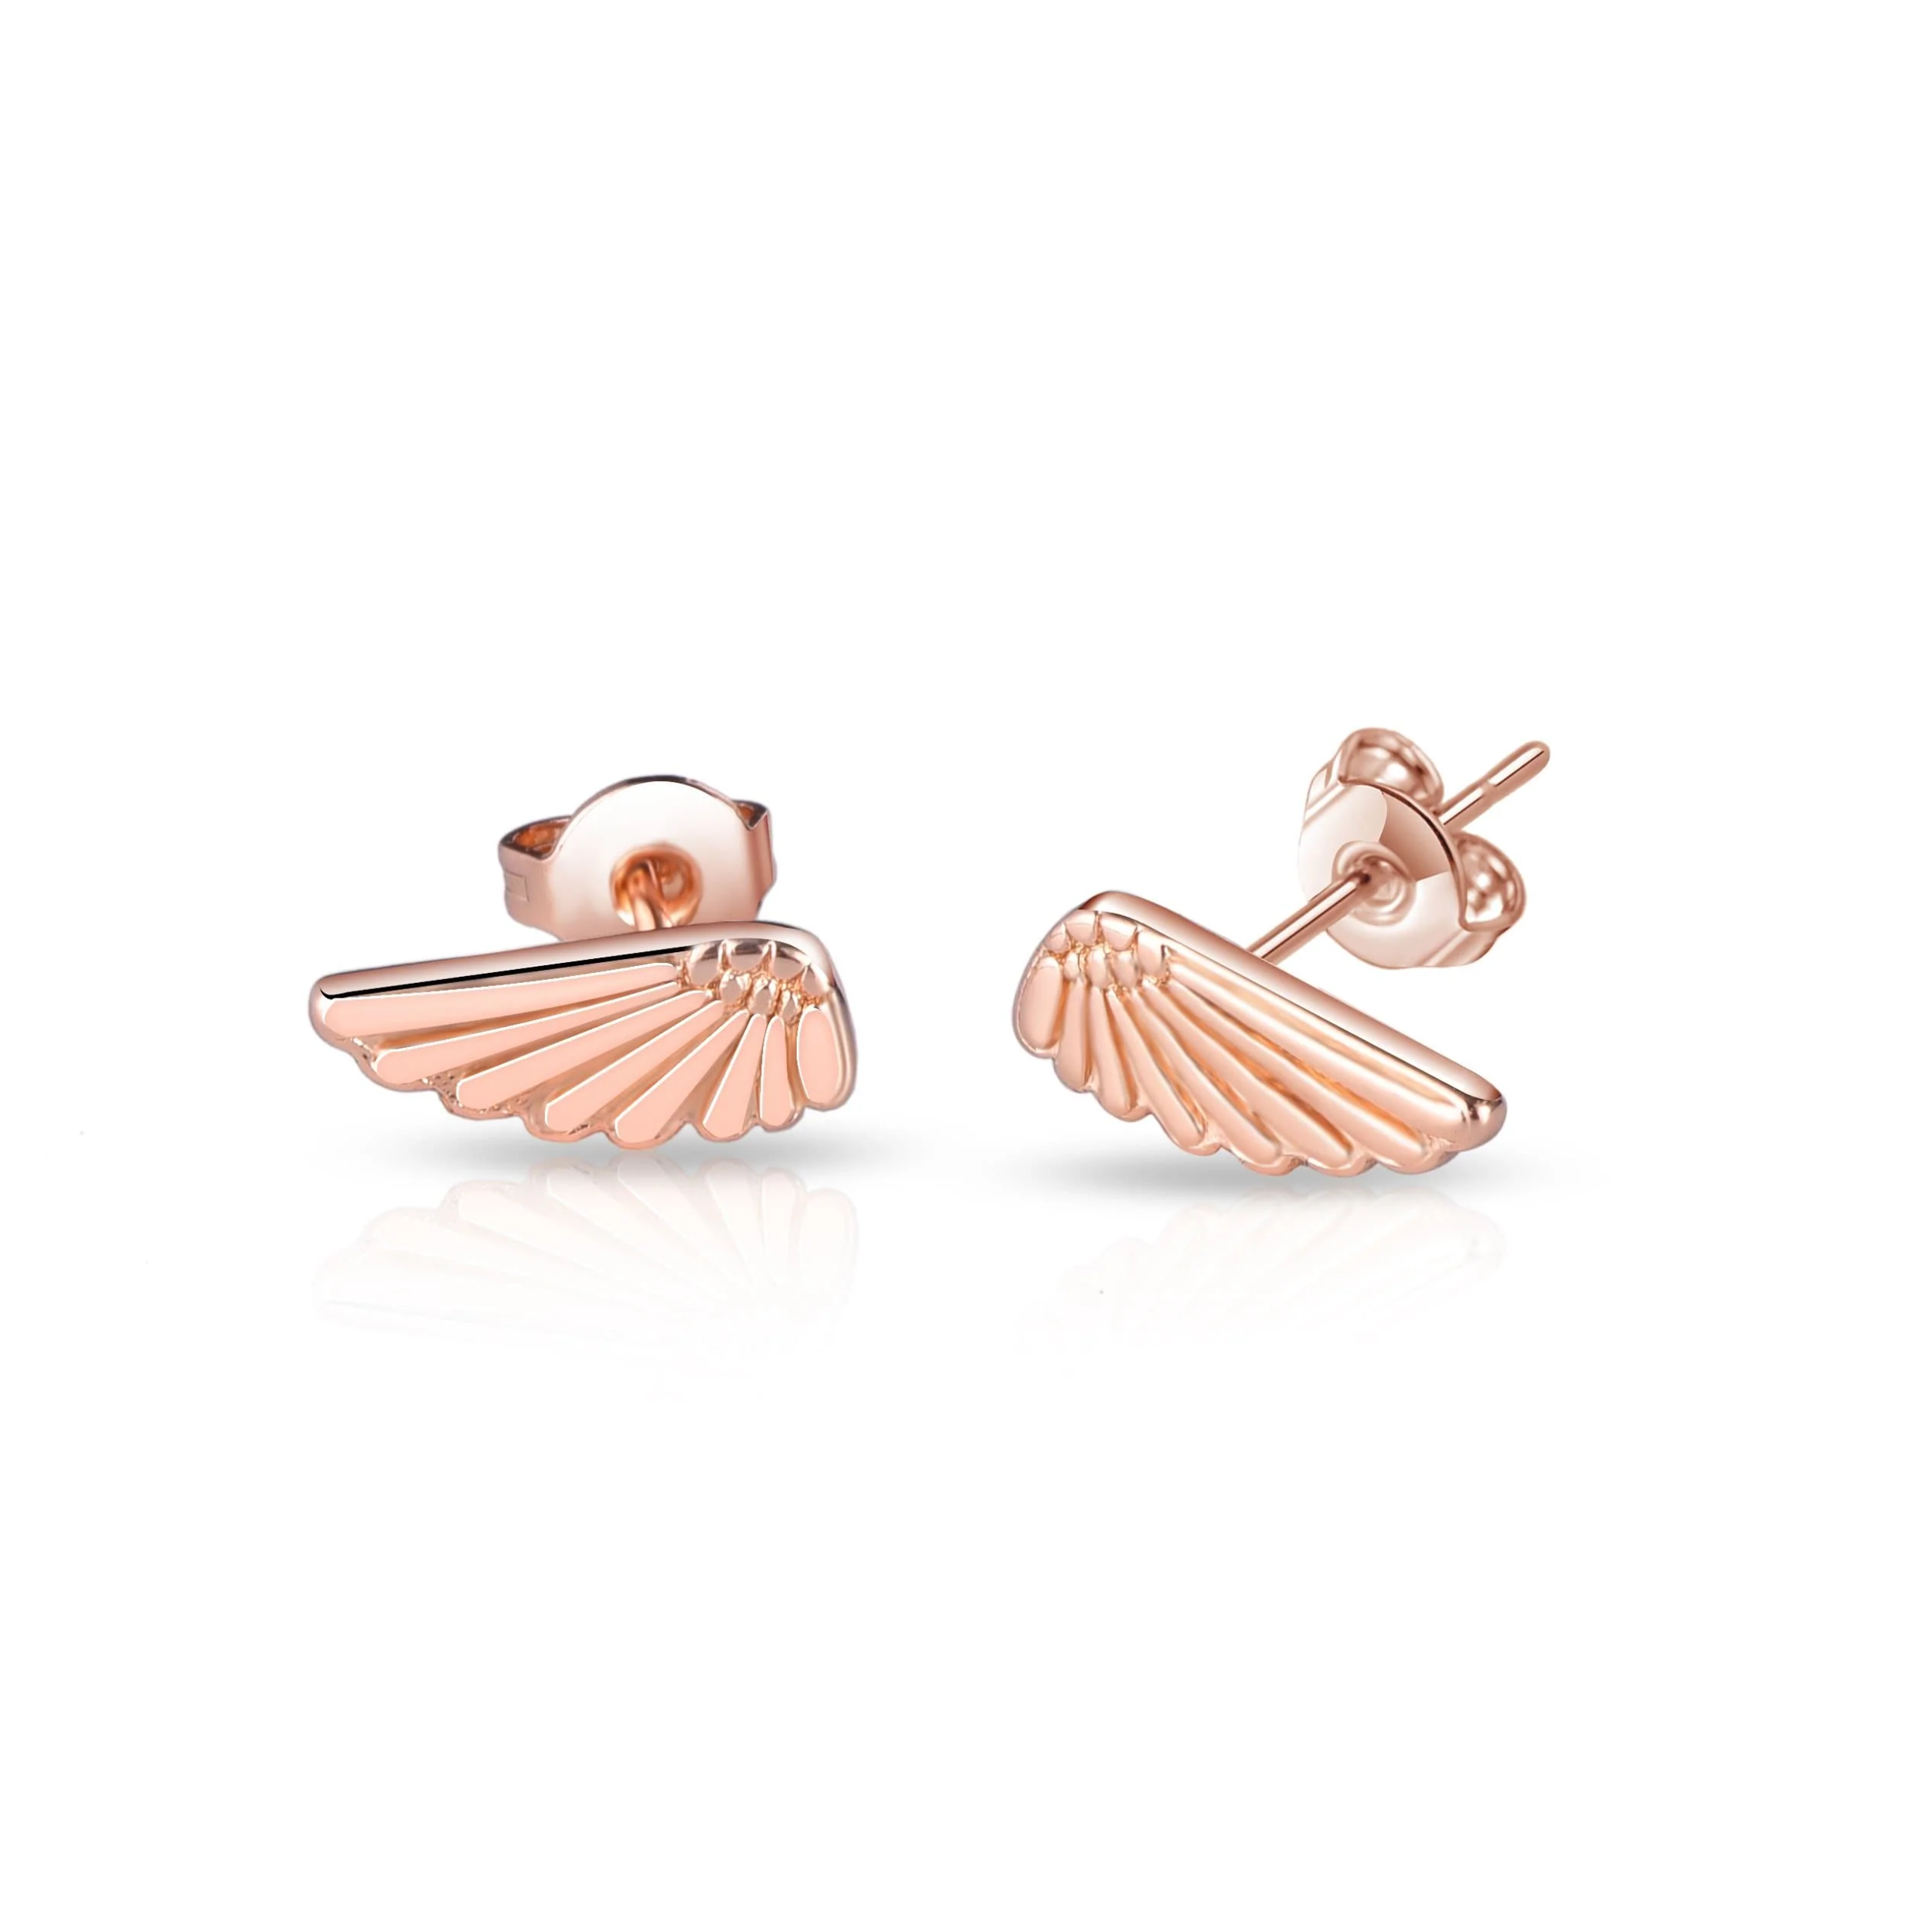 063b08ebba5dc Details about Rose Gold Angel Wing Earrings